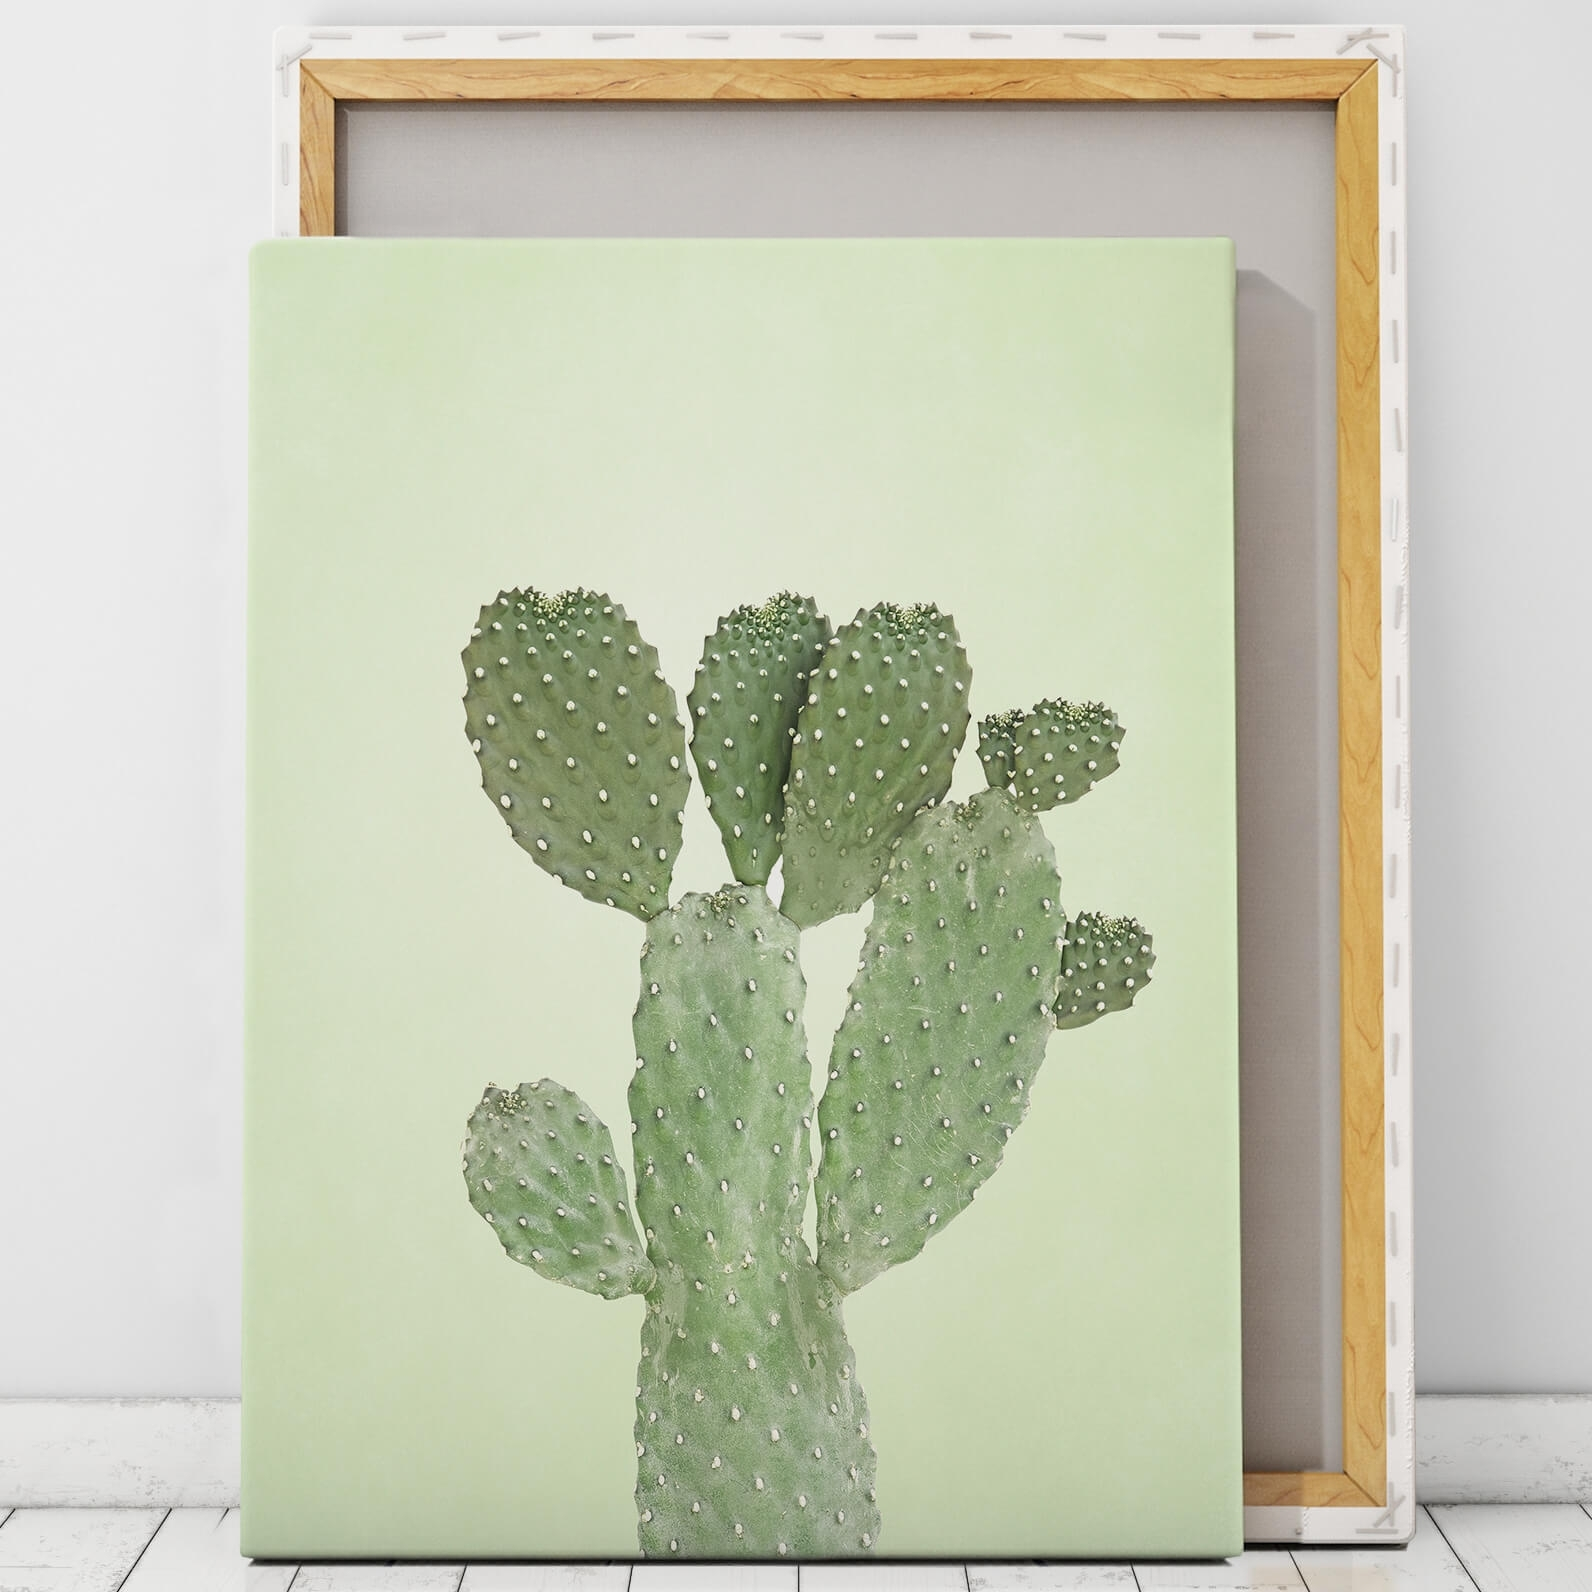 Green Cactus Wall Art Print | Artworld Art World Intended For Most Recent Cactus Wall Art (Gallery 6 of 20)